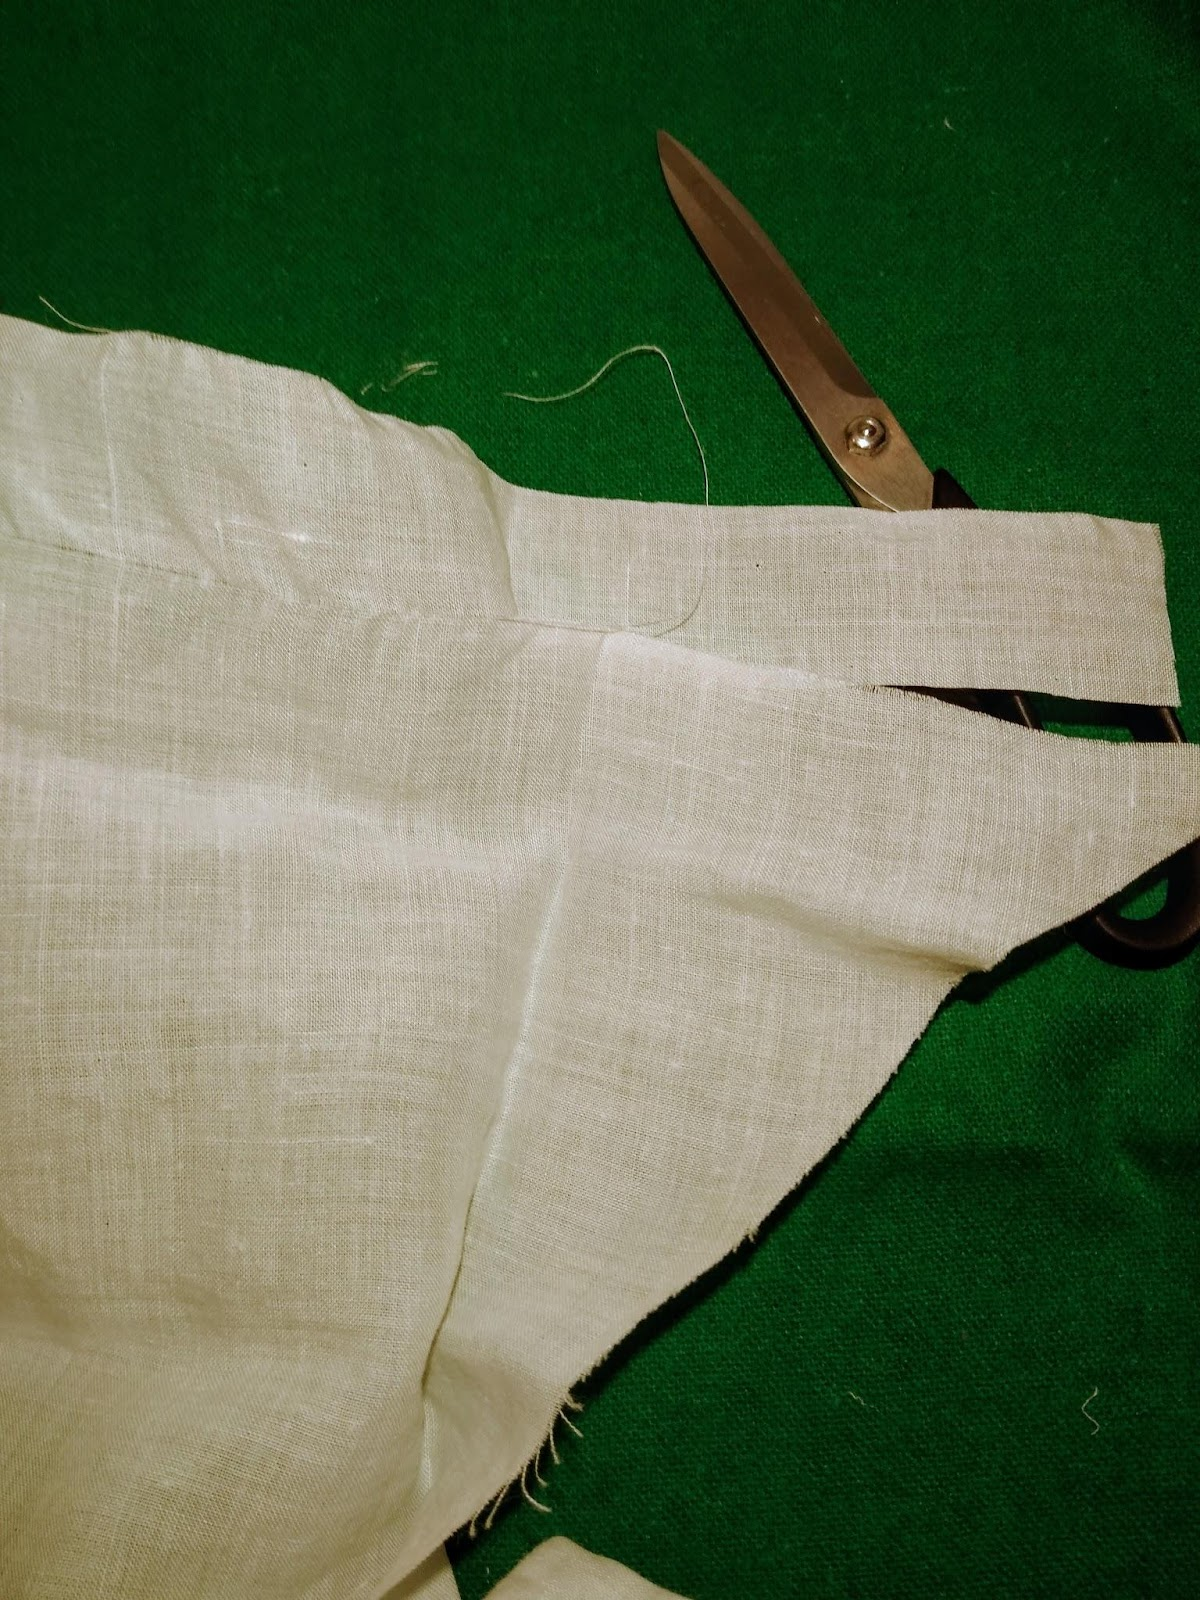 image shows a ruffle piece being created by pulling a thread and then following the channel created to cut a straight edge.